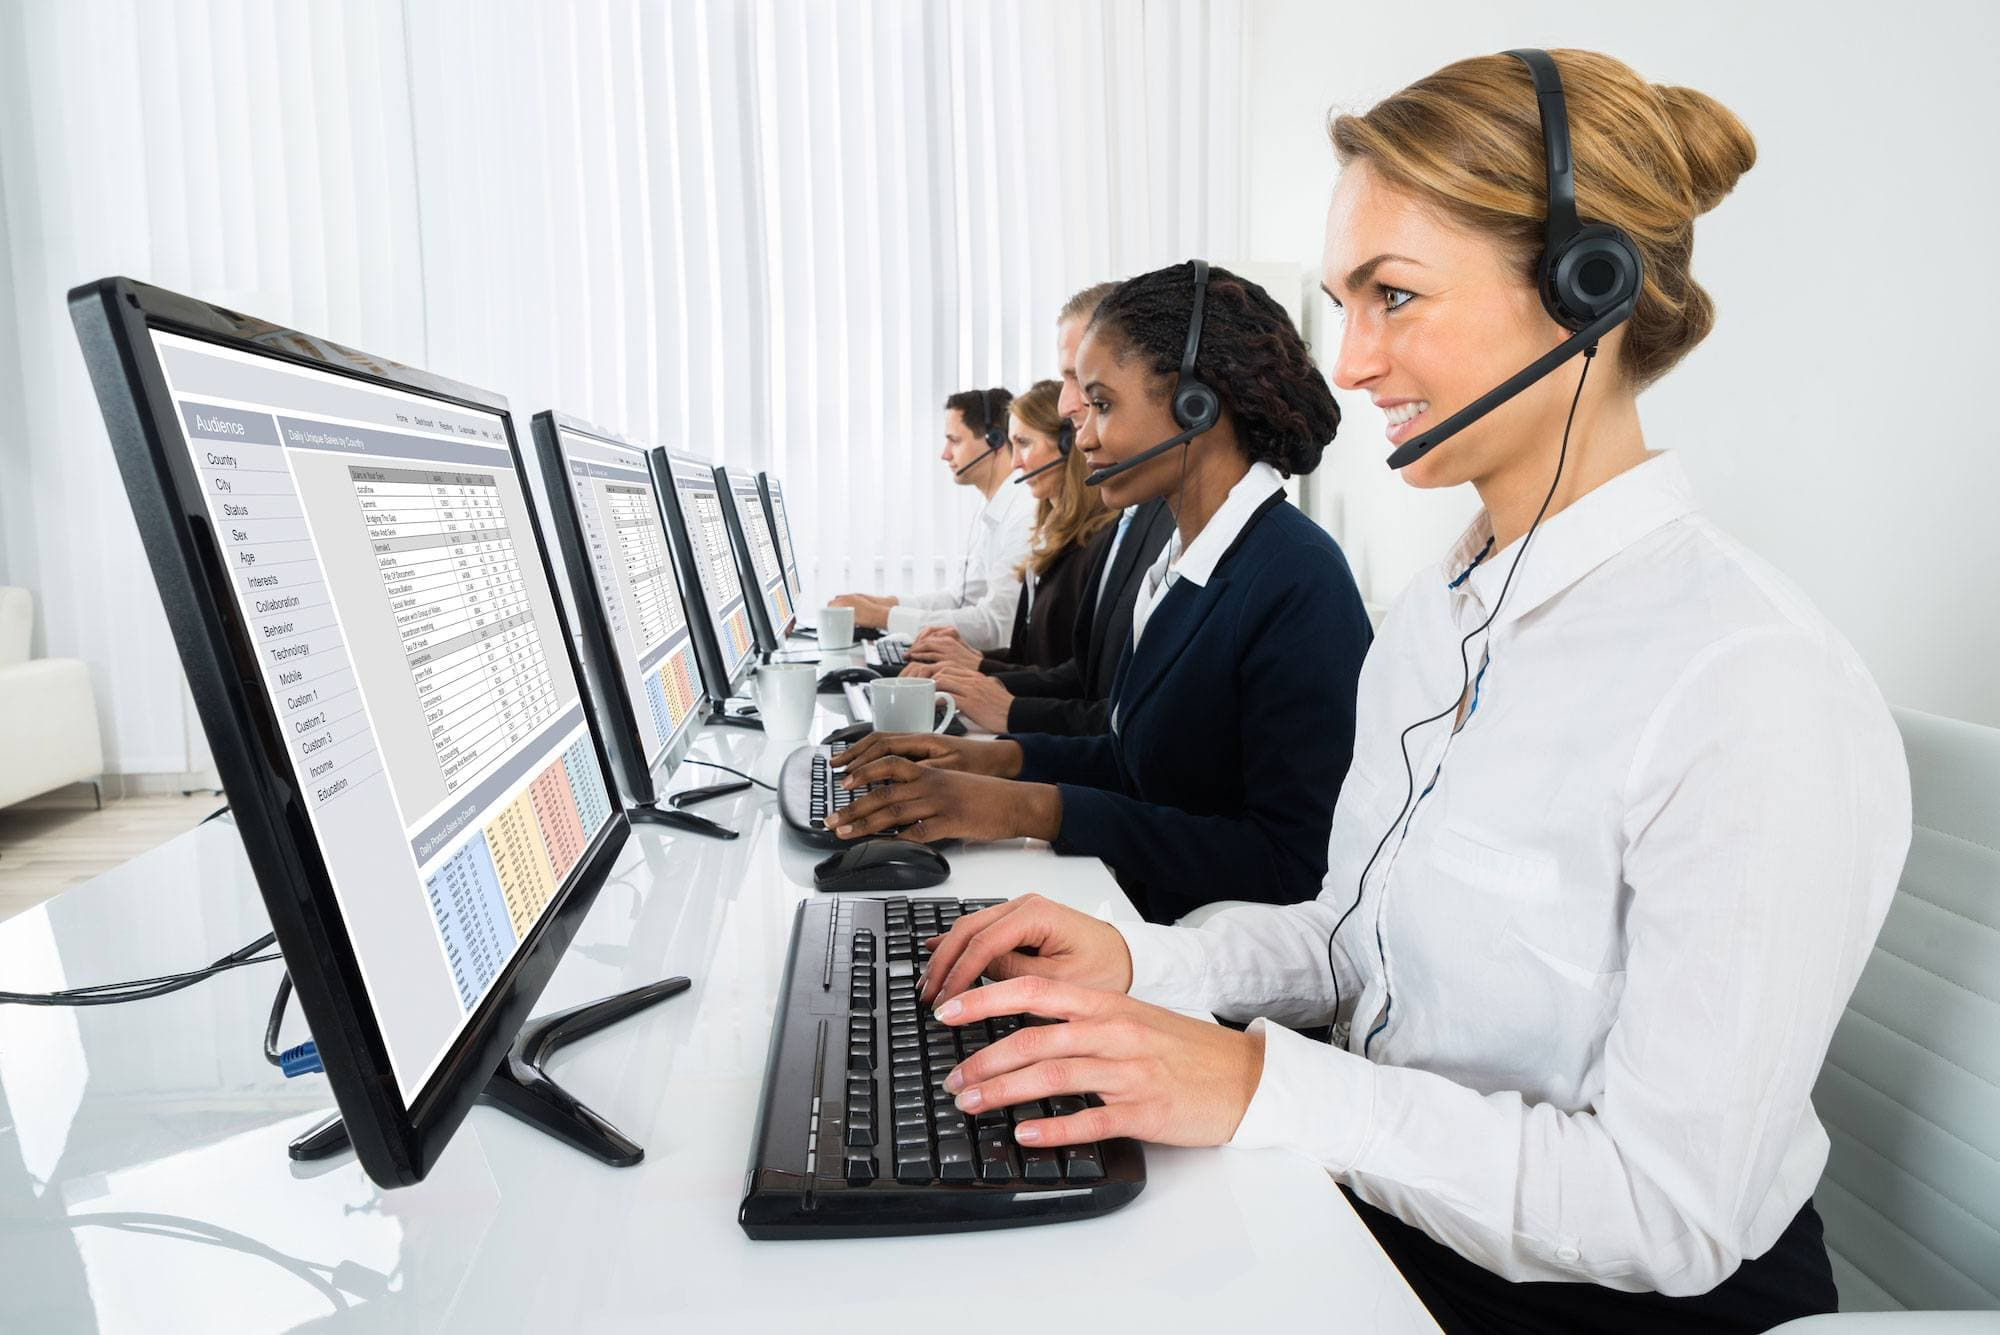 anserve business answering service